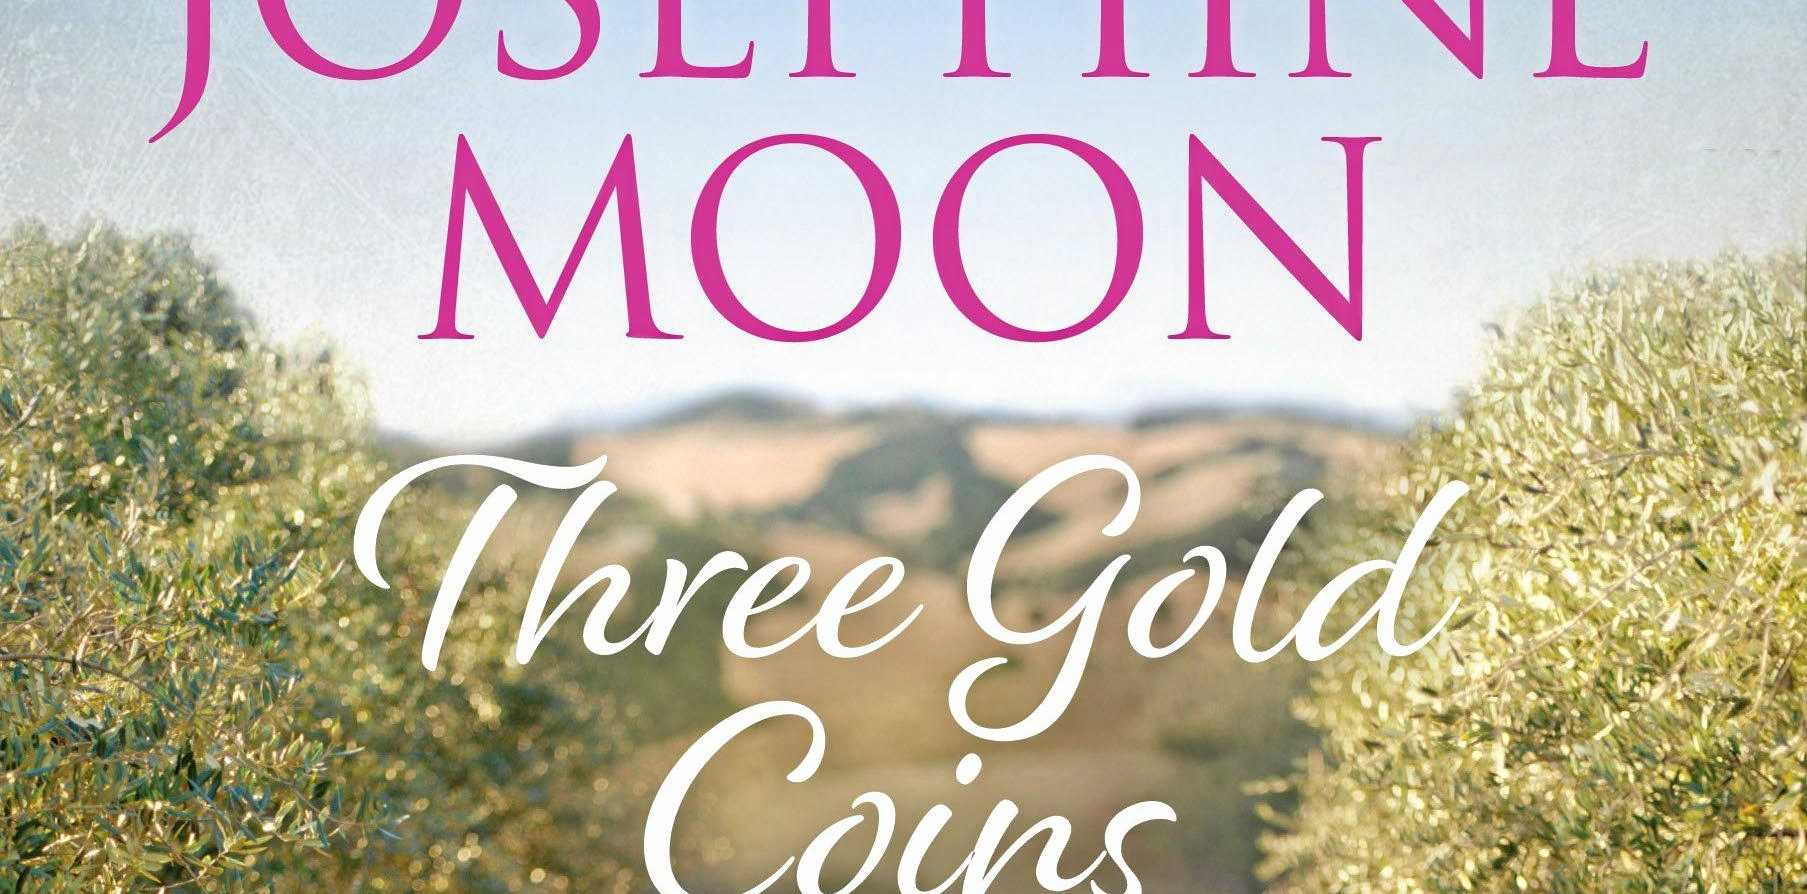 NEW BOOKS: Australian author Josephine Moon's Three Gold Coins starts tantalisingly with one coin for love, one for marriage, one to return to Rome